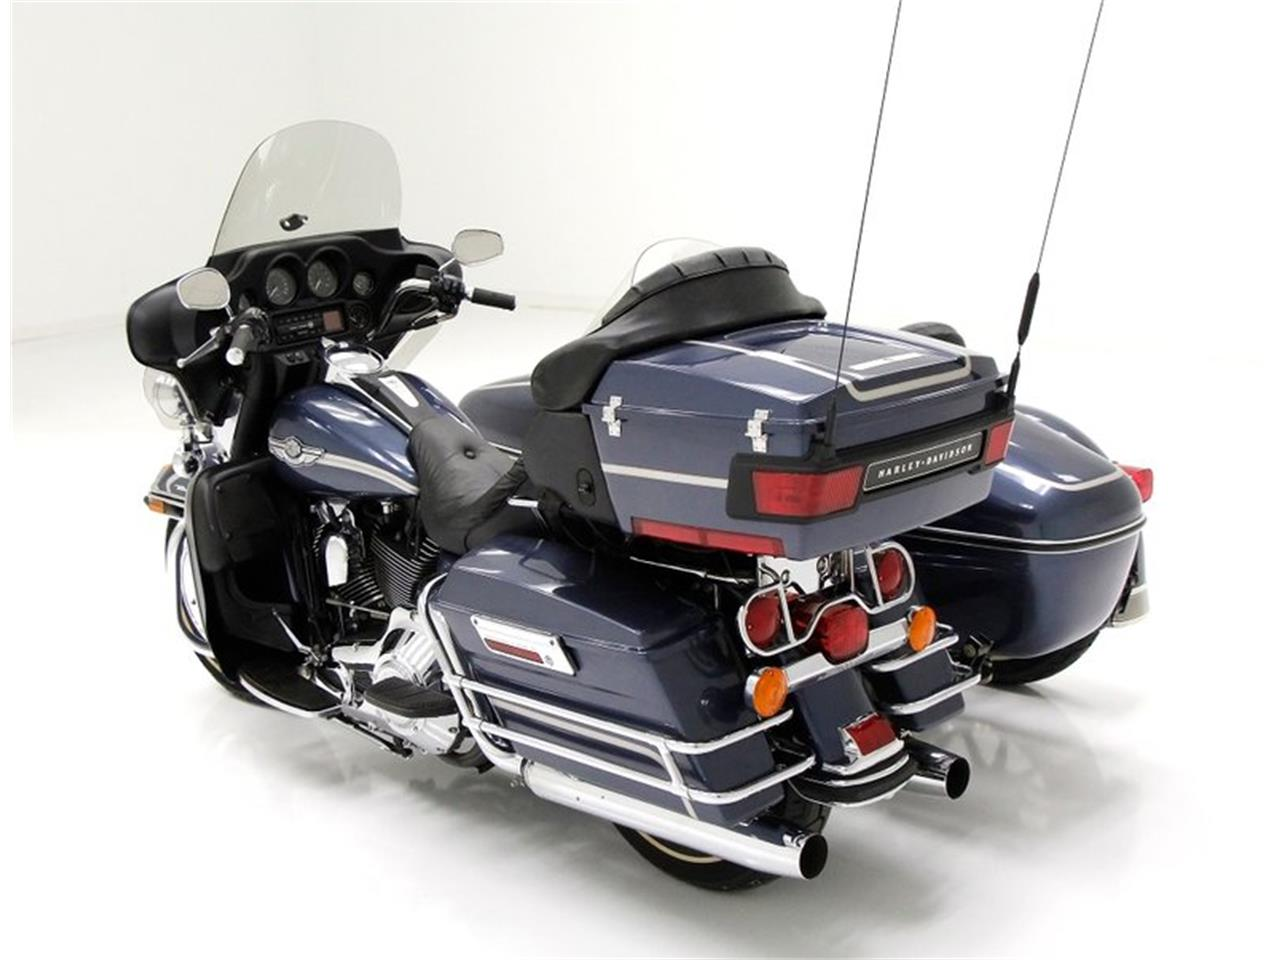 2003 Harley-Davidson Electra Glide (CC-1218220) for sale in Morgantown, Pennsylvania